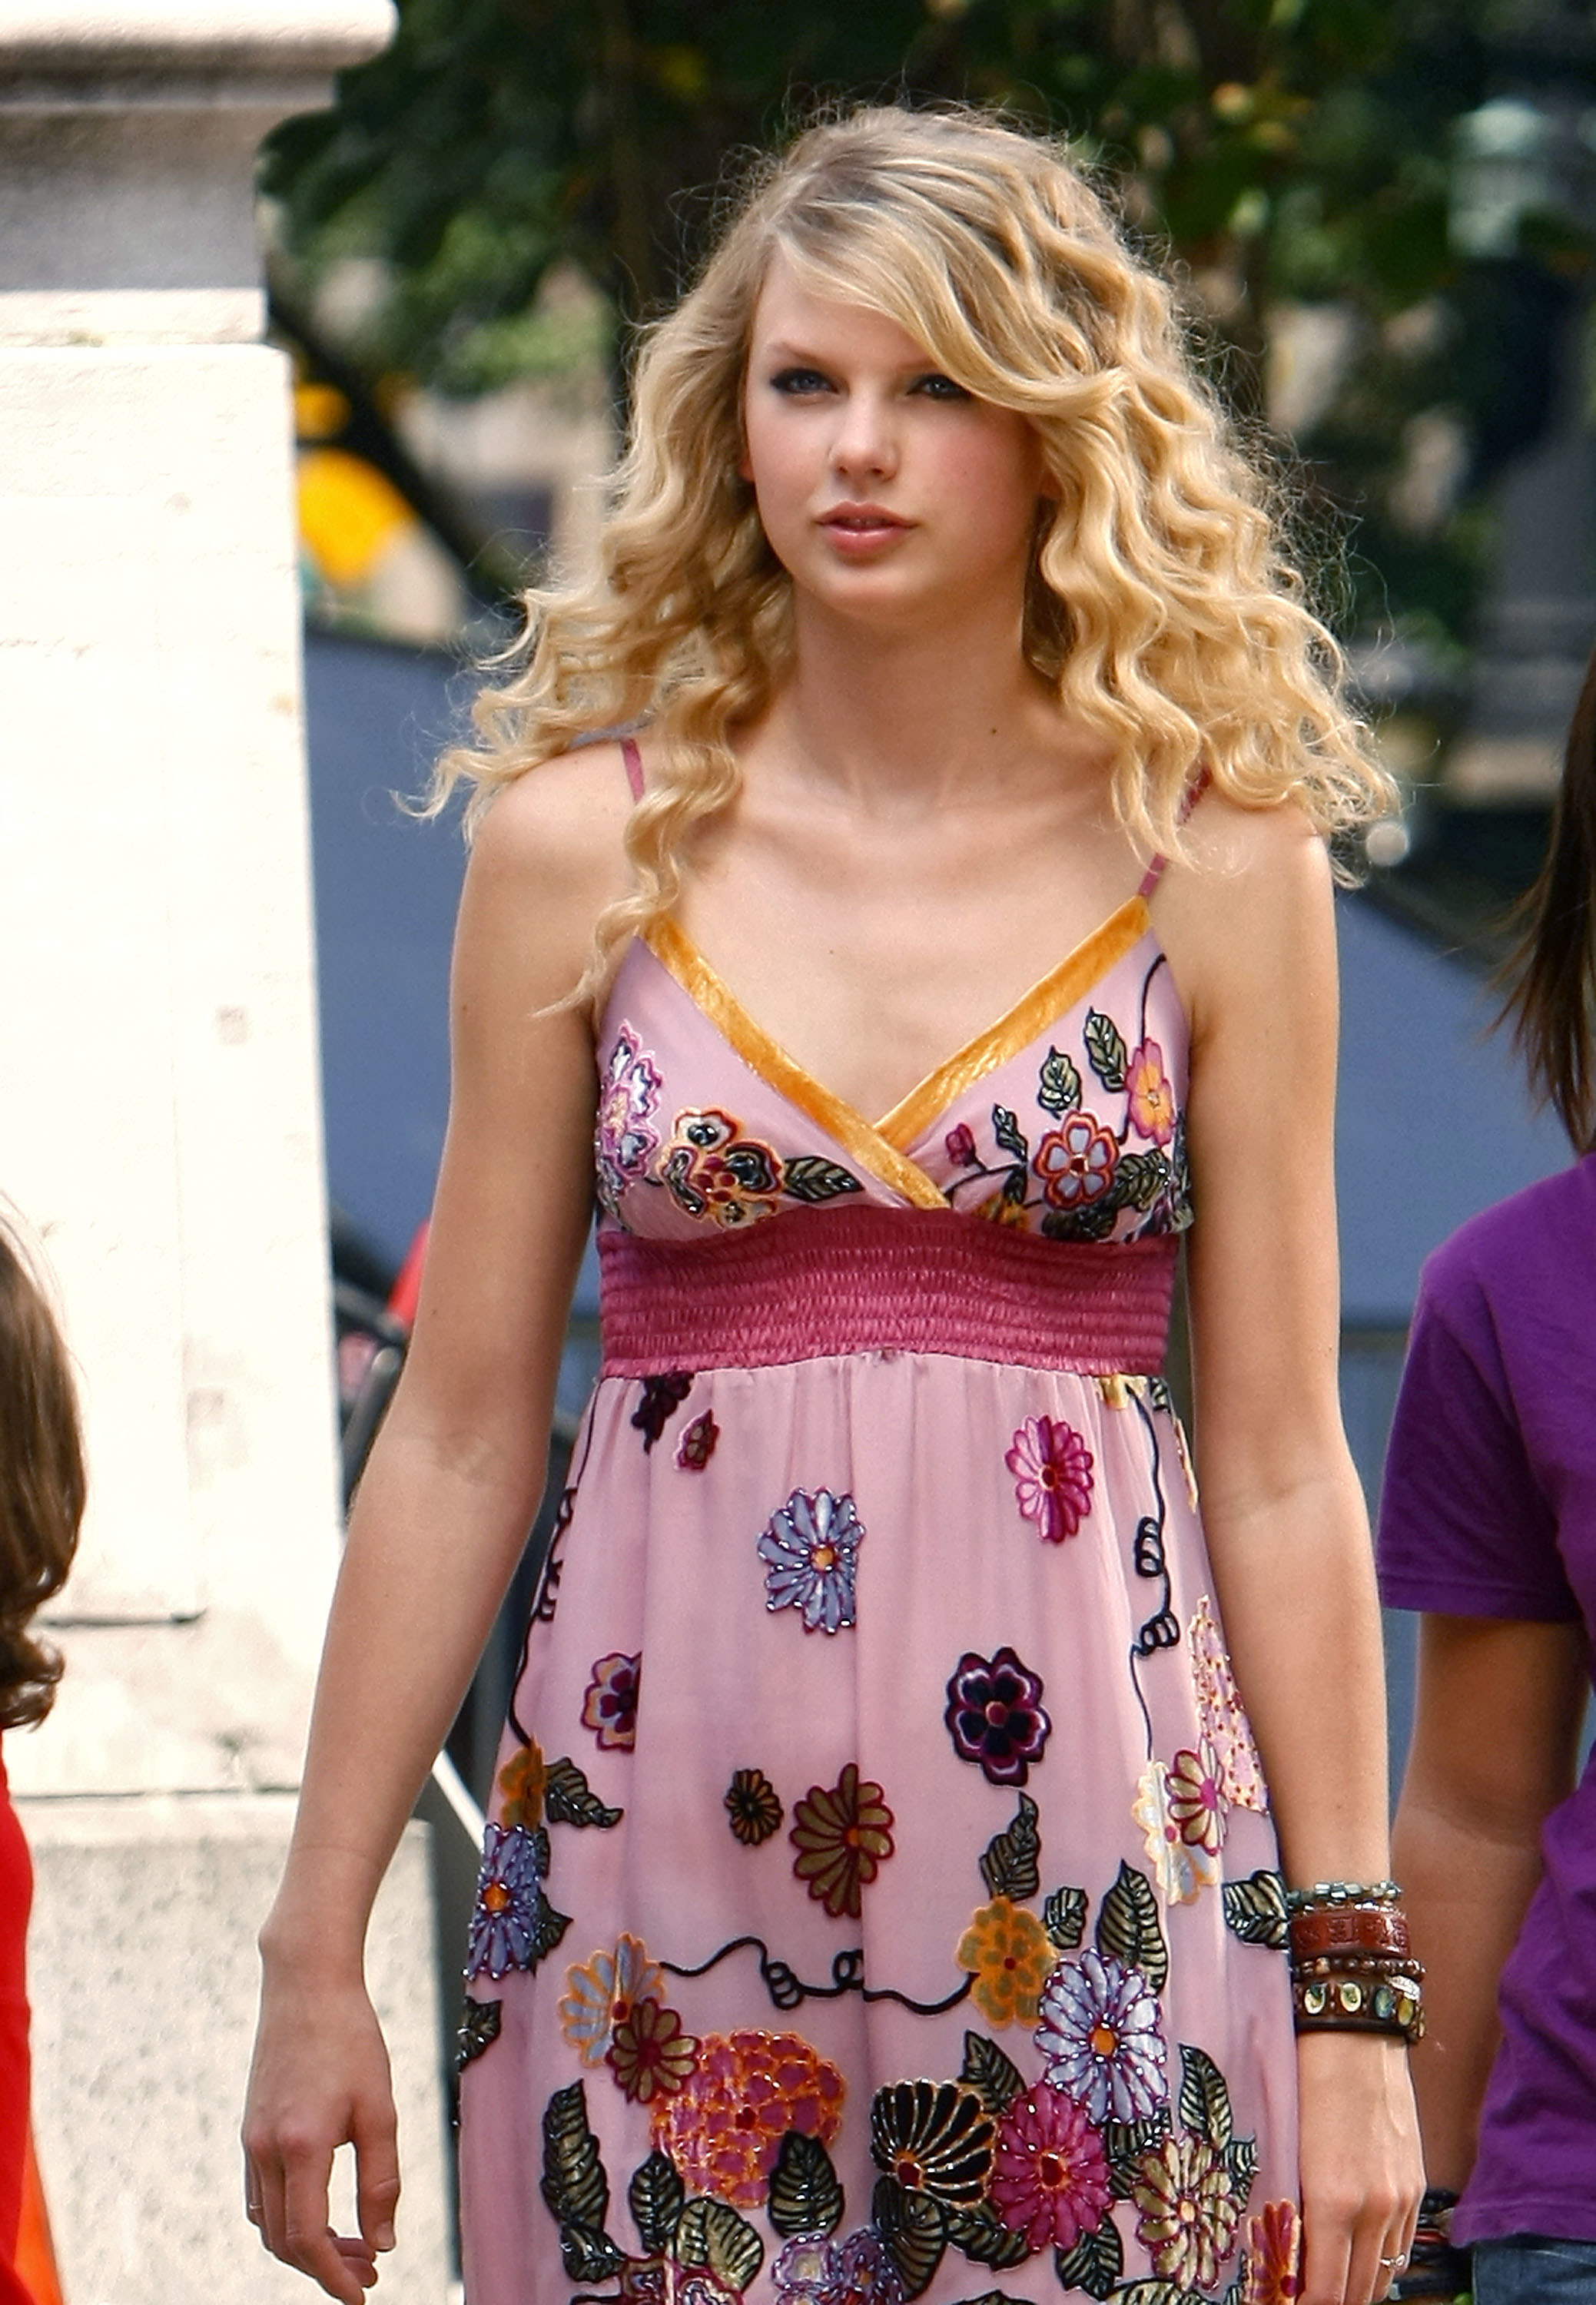 Candid of Taylor Swift in a pink floral dress